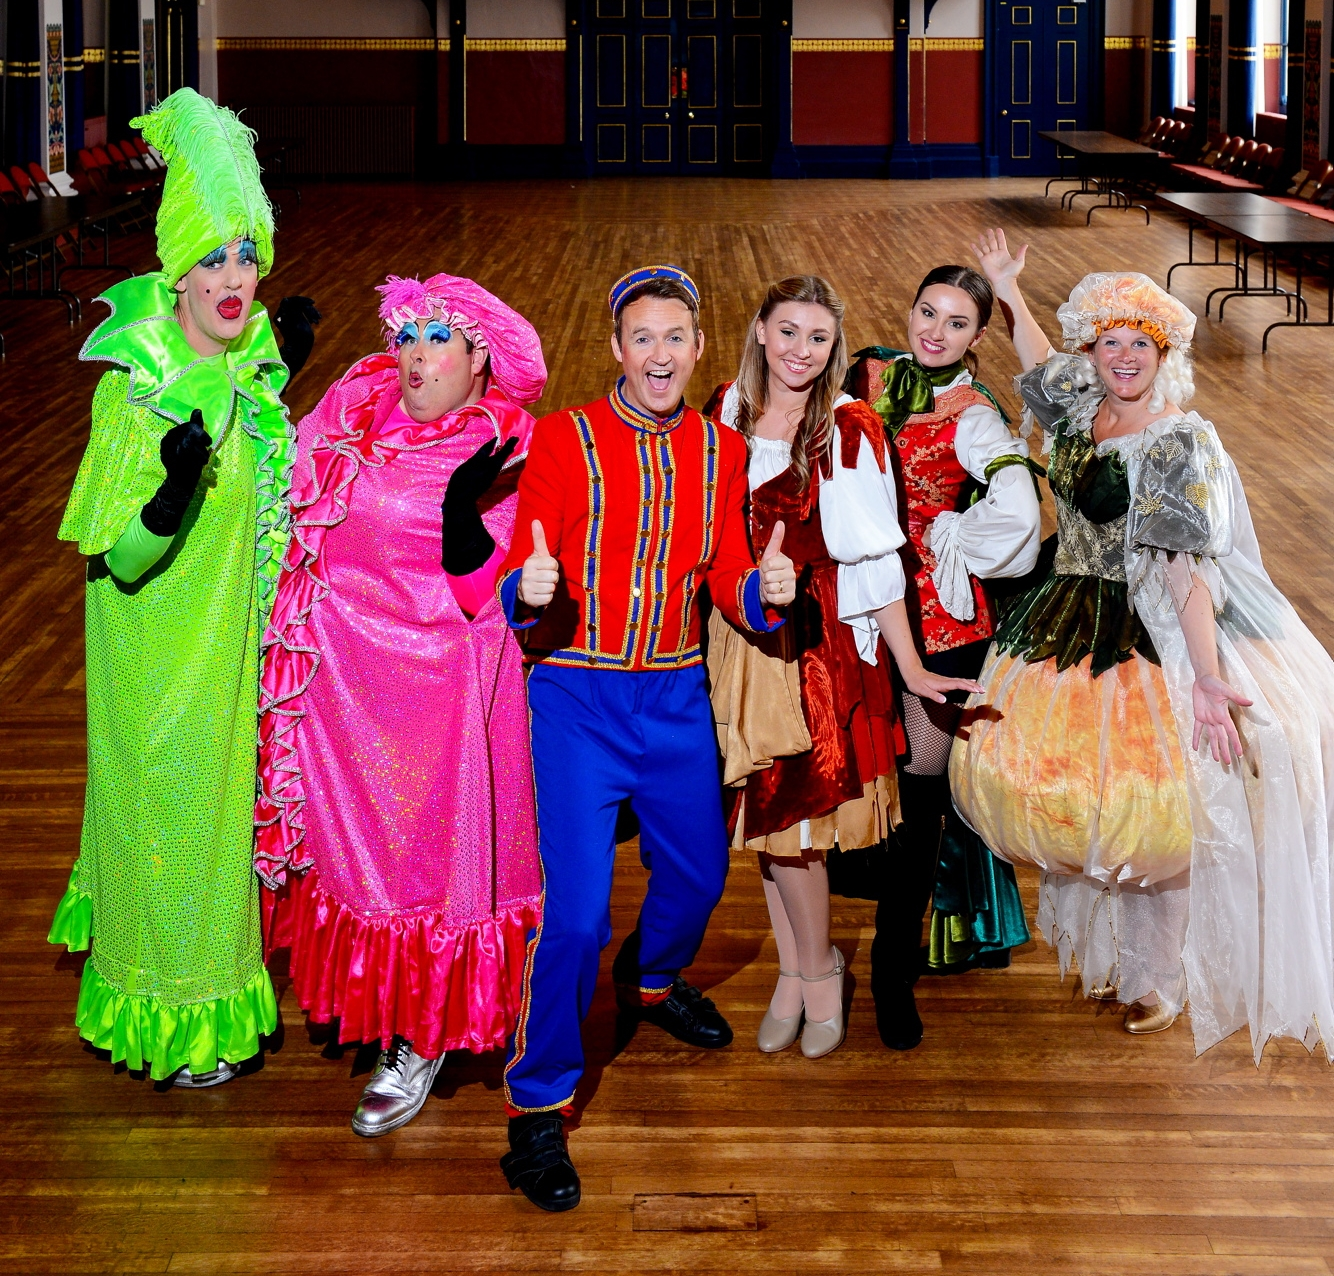 The launch of the Grimsby Auditorium Panto of Cinderella, at Grimsby Town Hall. Buy this photo at www.grimsbytelegraph.co.uk/buyaphoto or by calling the free number 03444 060 910 Story by: Alex Date: 06/09/2017 Keywords: